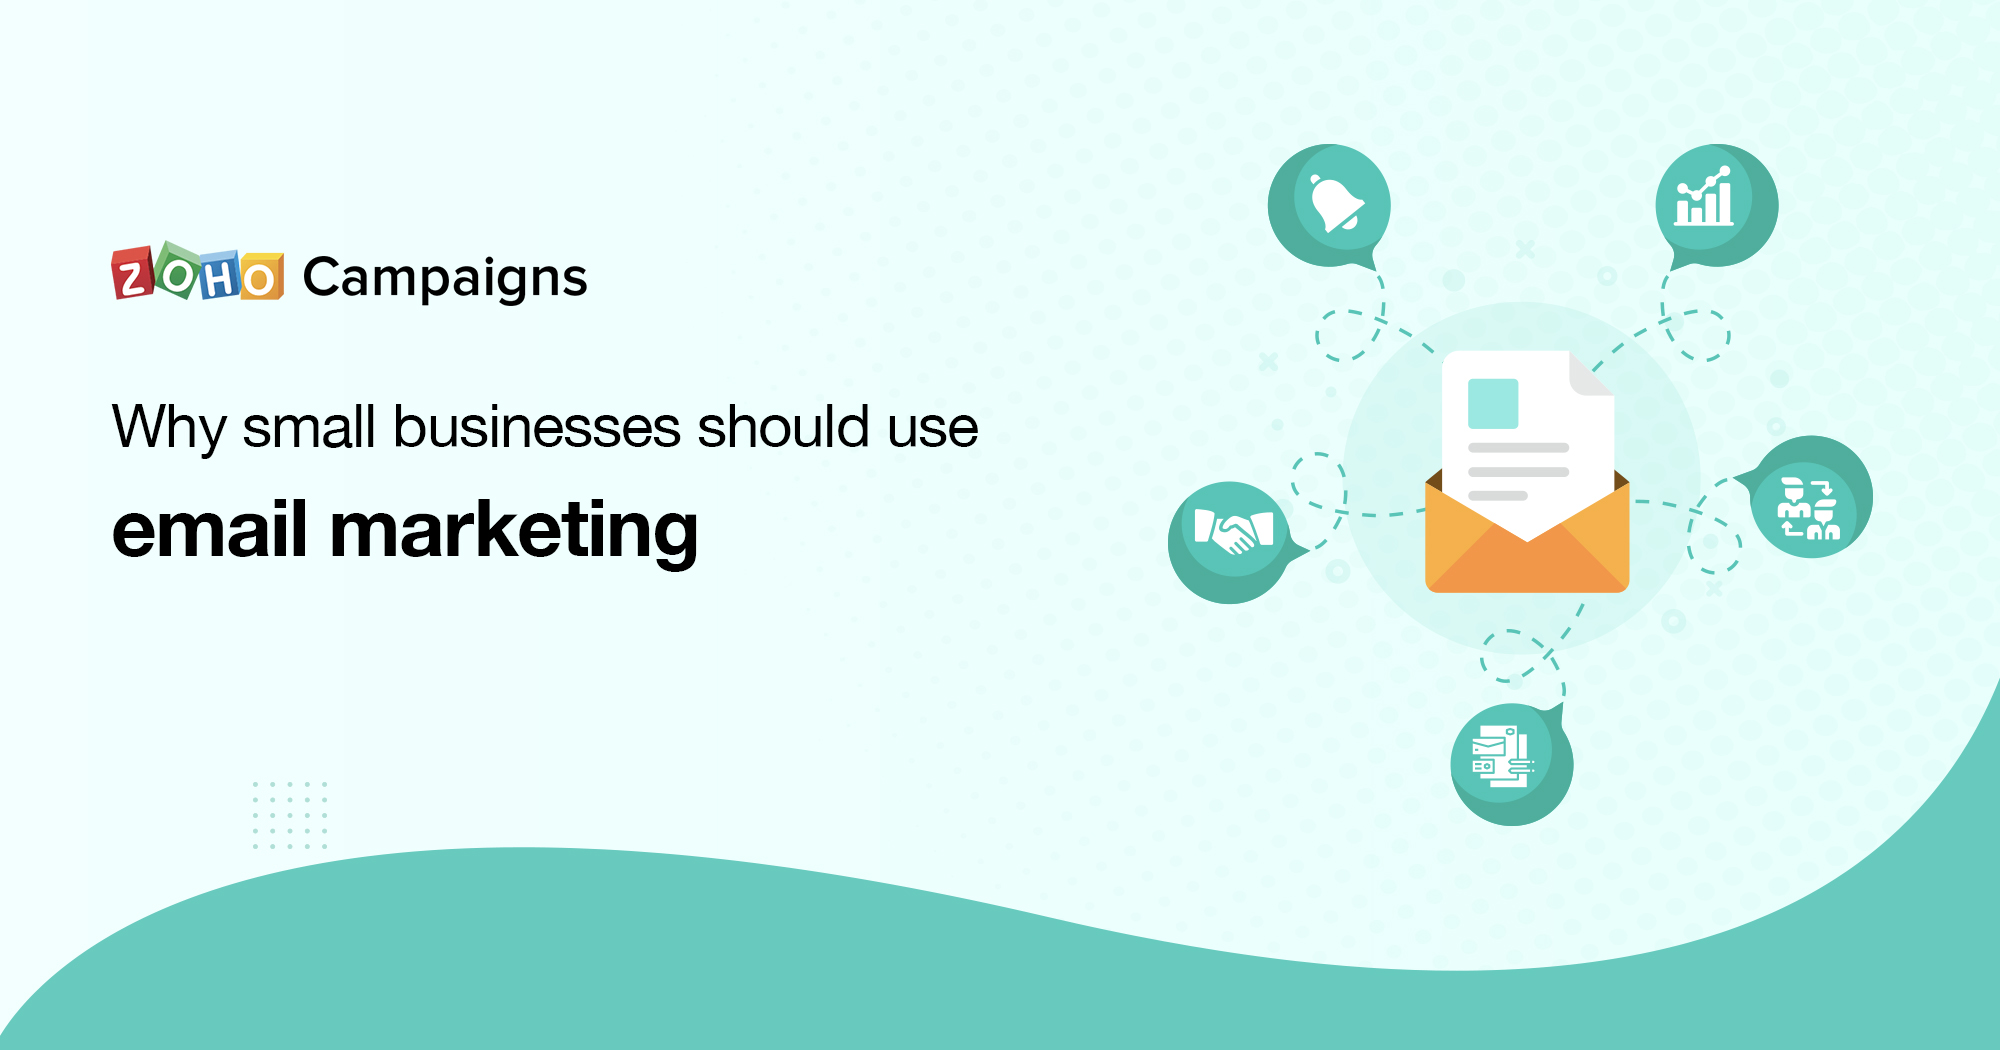 Why small businesses should use email marketing